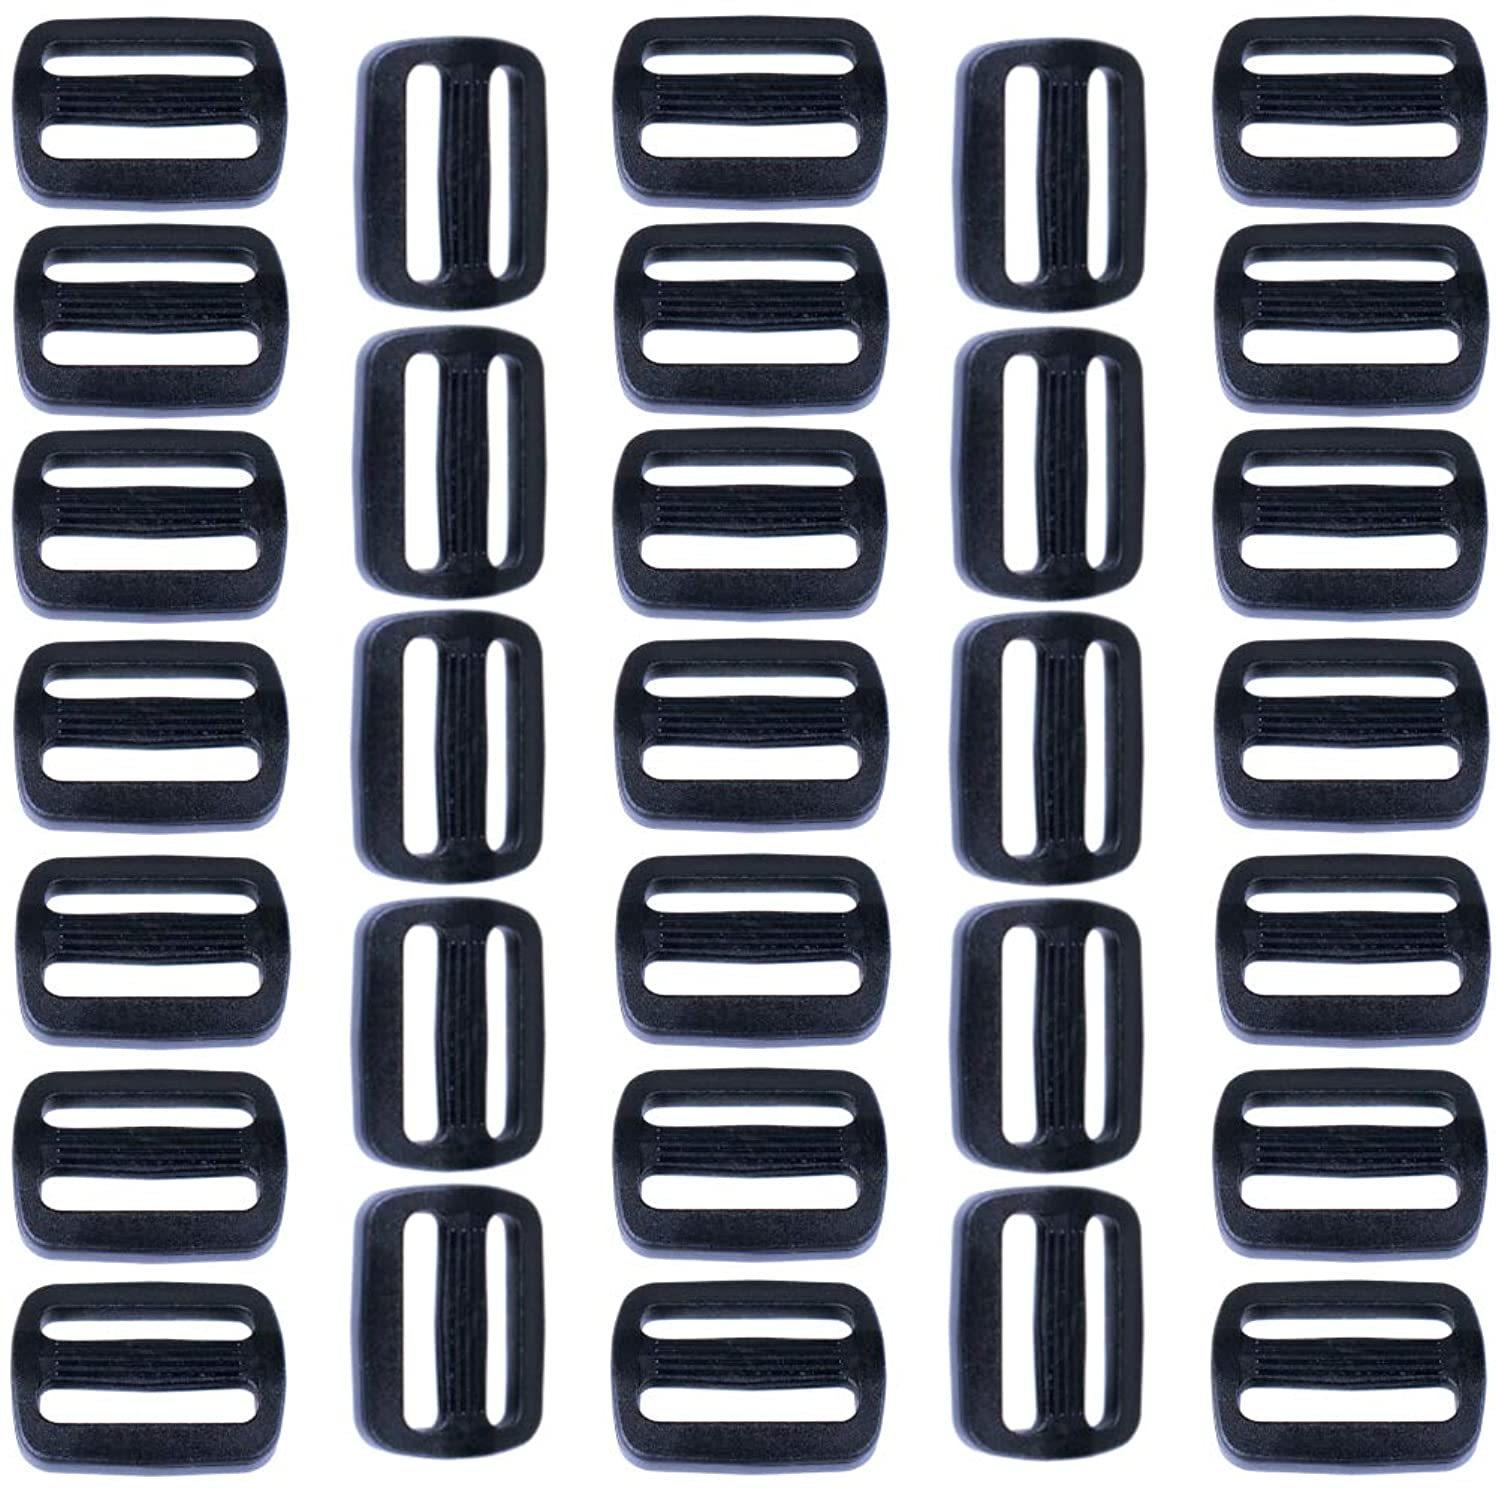 Paracord Planet 100 Pack 1-Inch Plastic Tri-Glide Slides for Backpacks and Bags